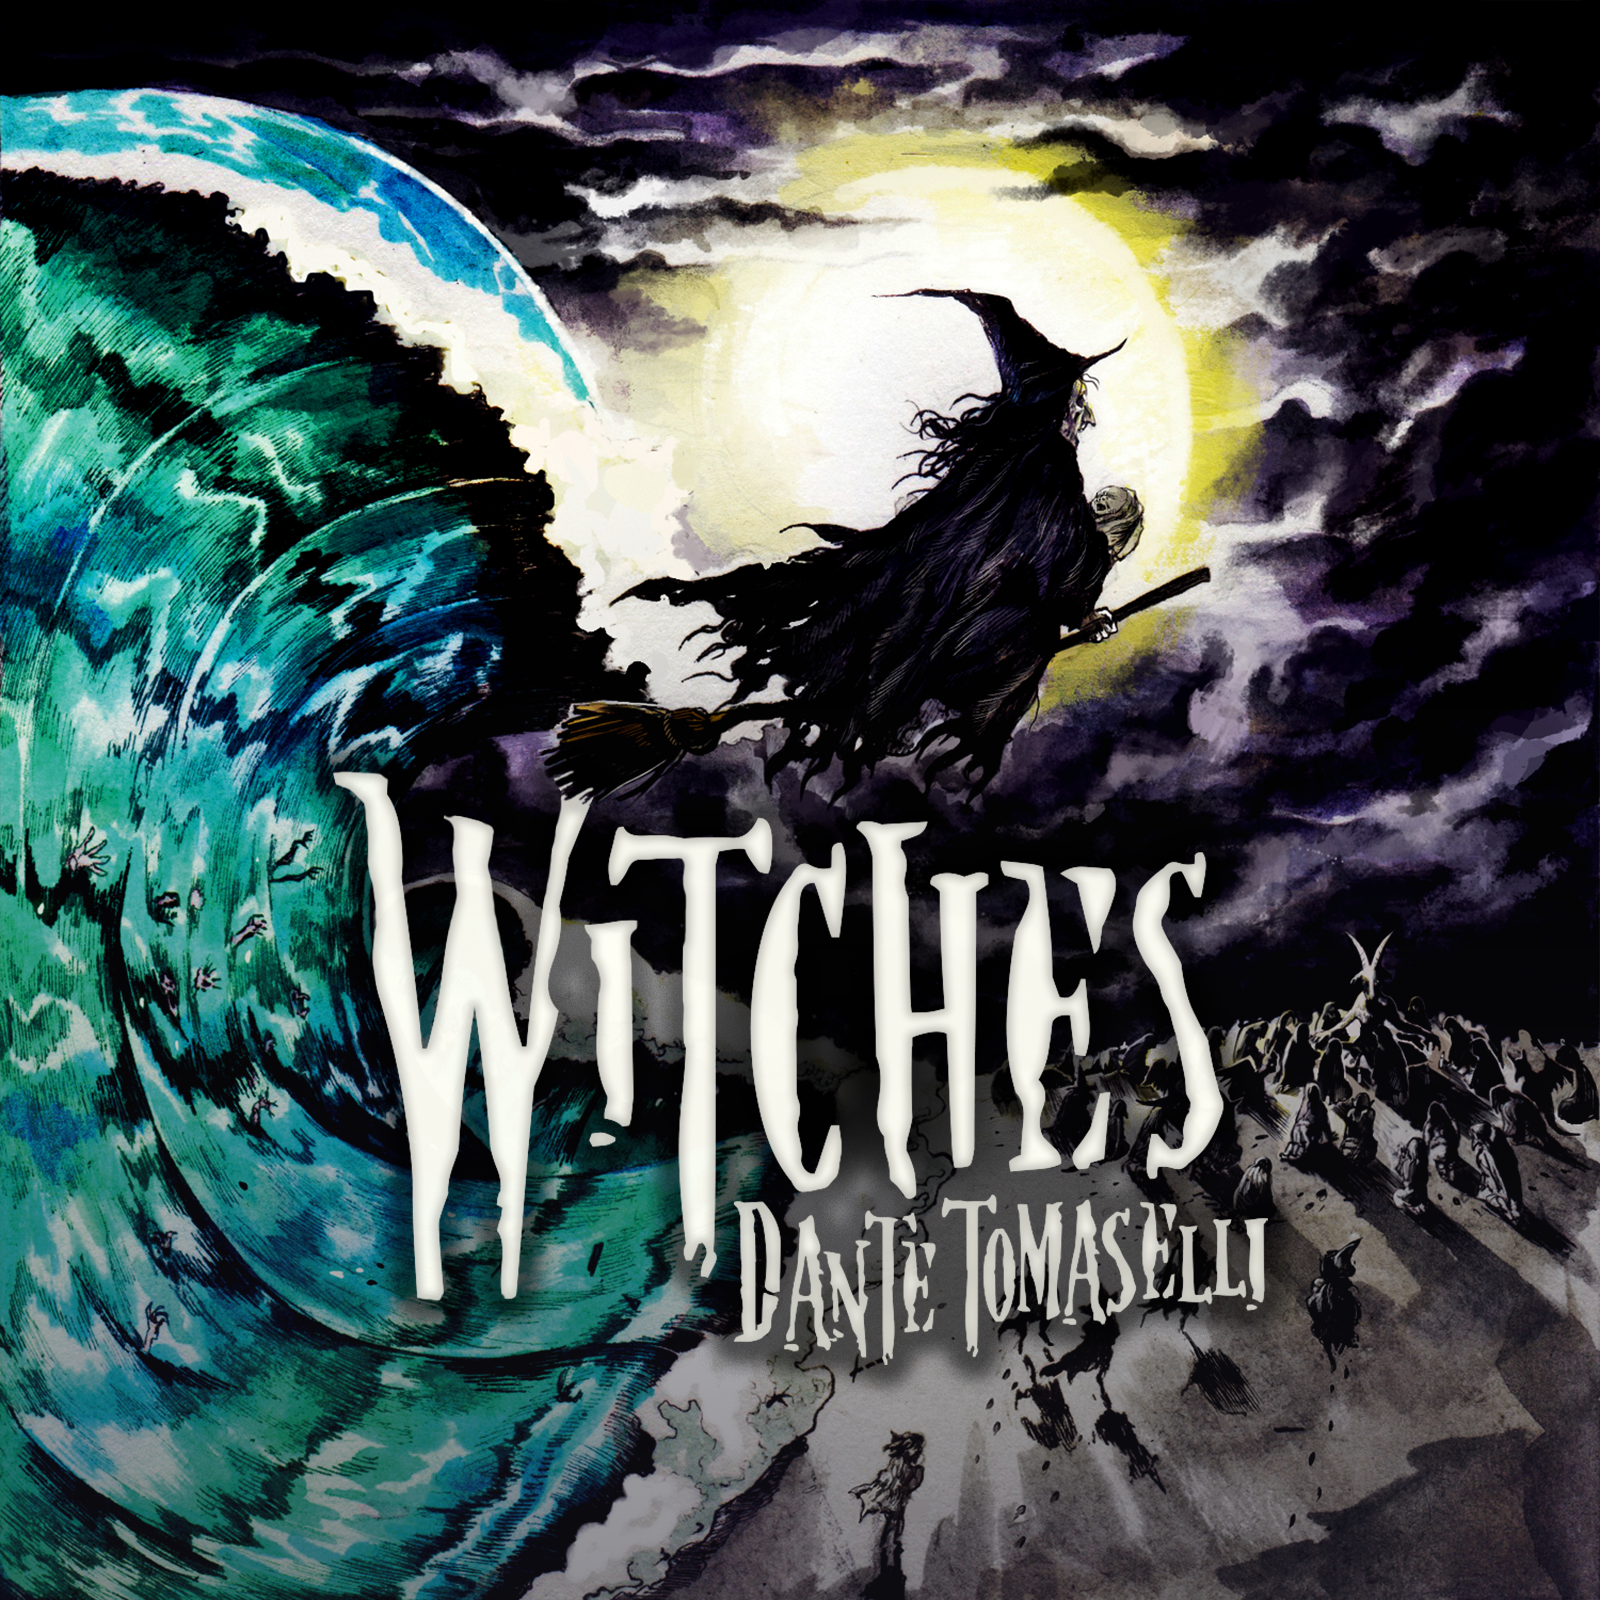 Witches cover image